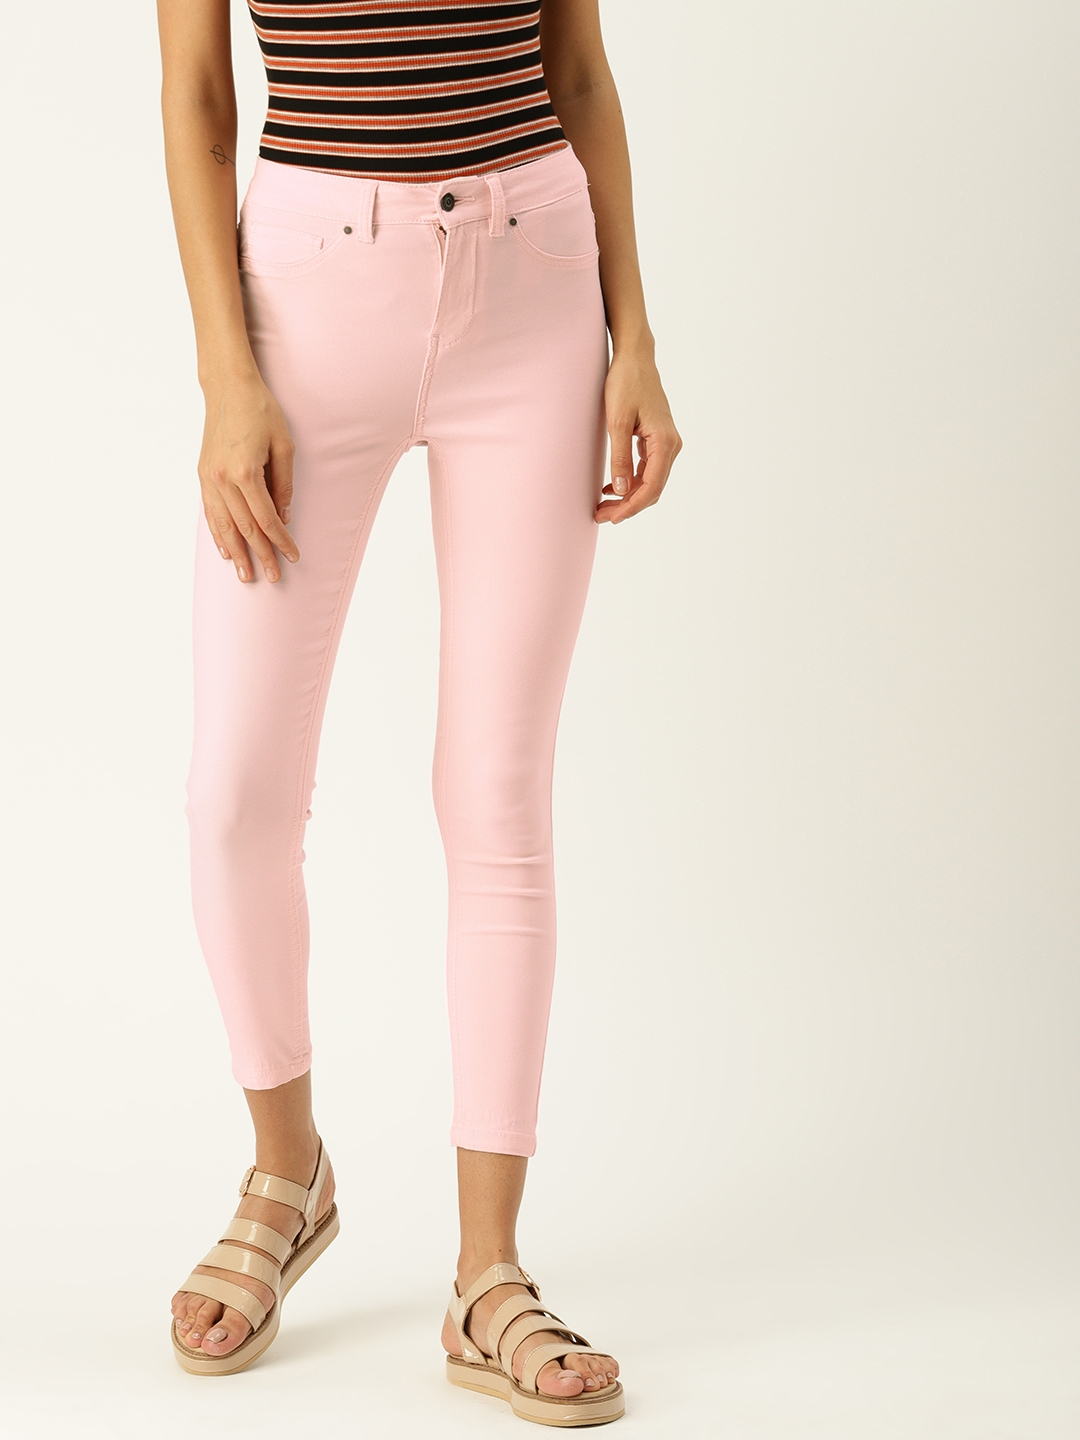 Allen Solly Woman Pink Solid Jeggings